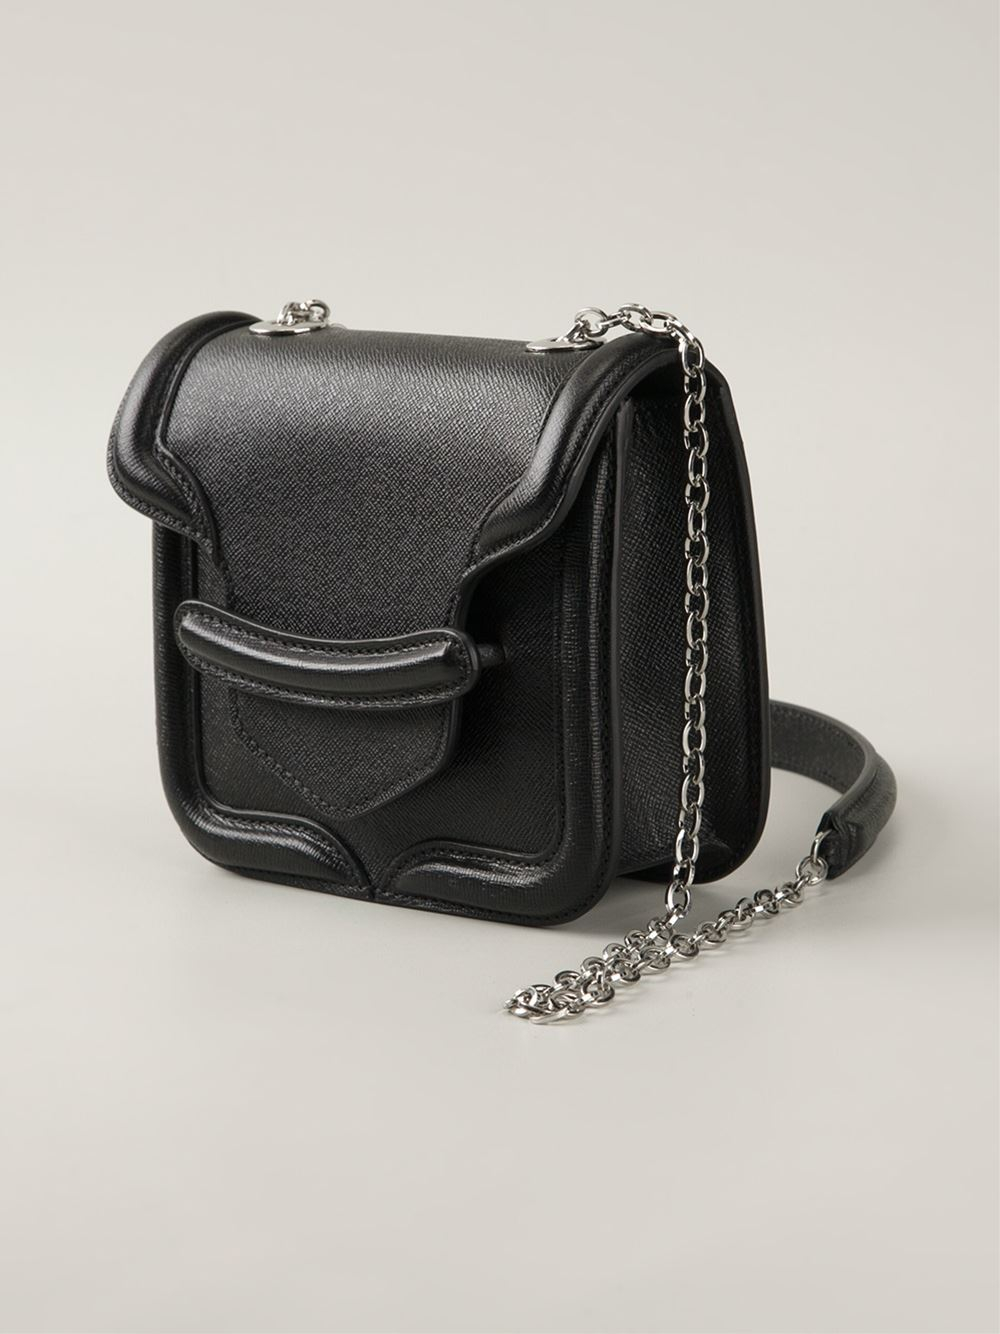 Alexander mcqueen Mini 'Heroine' Crossbody Bag in Black | Lyst